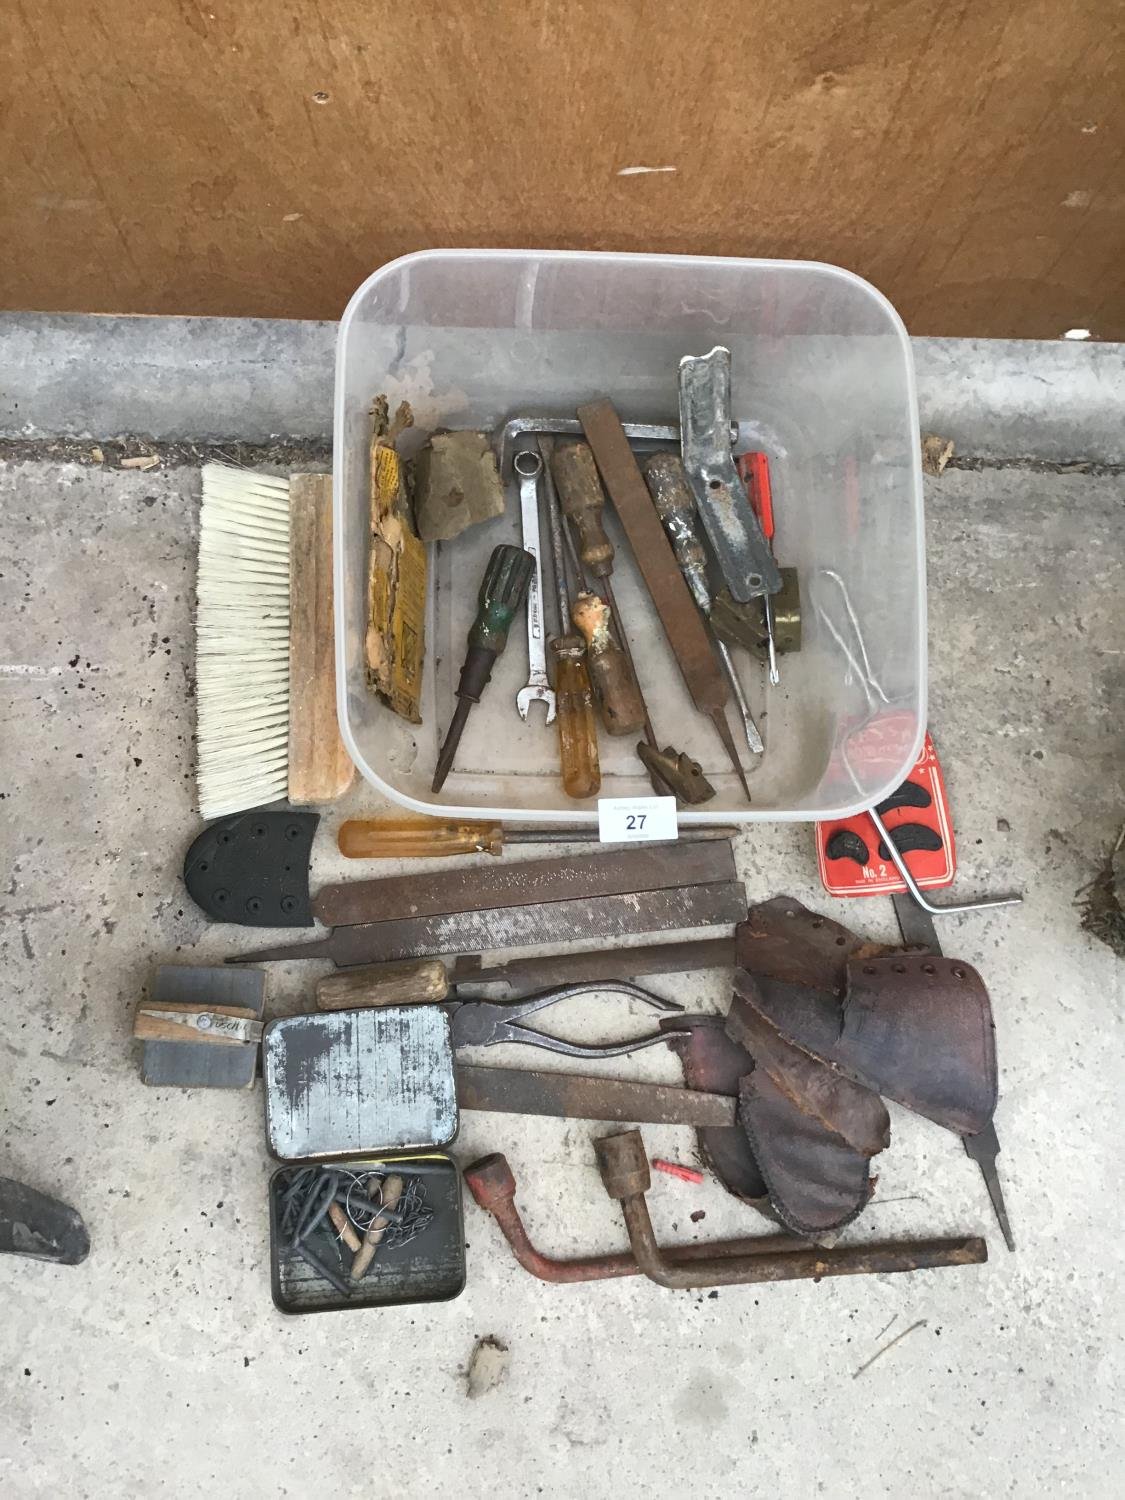 Lot 27 - VARIOUS TOOLS TO INCLUDE RASPS, PLIERS, SAW, SCREWDRIVER ETC